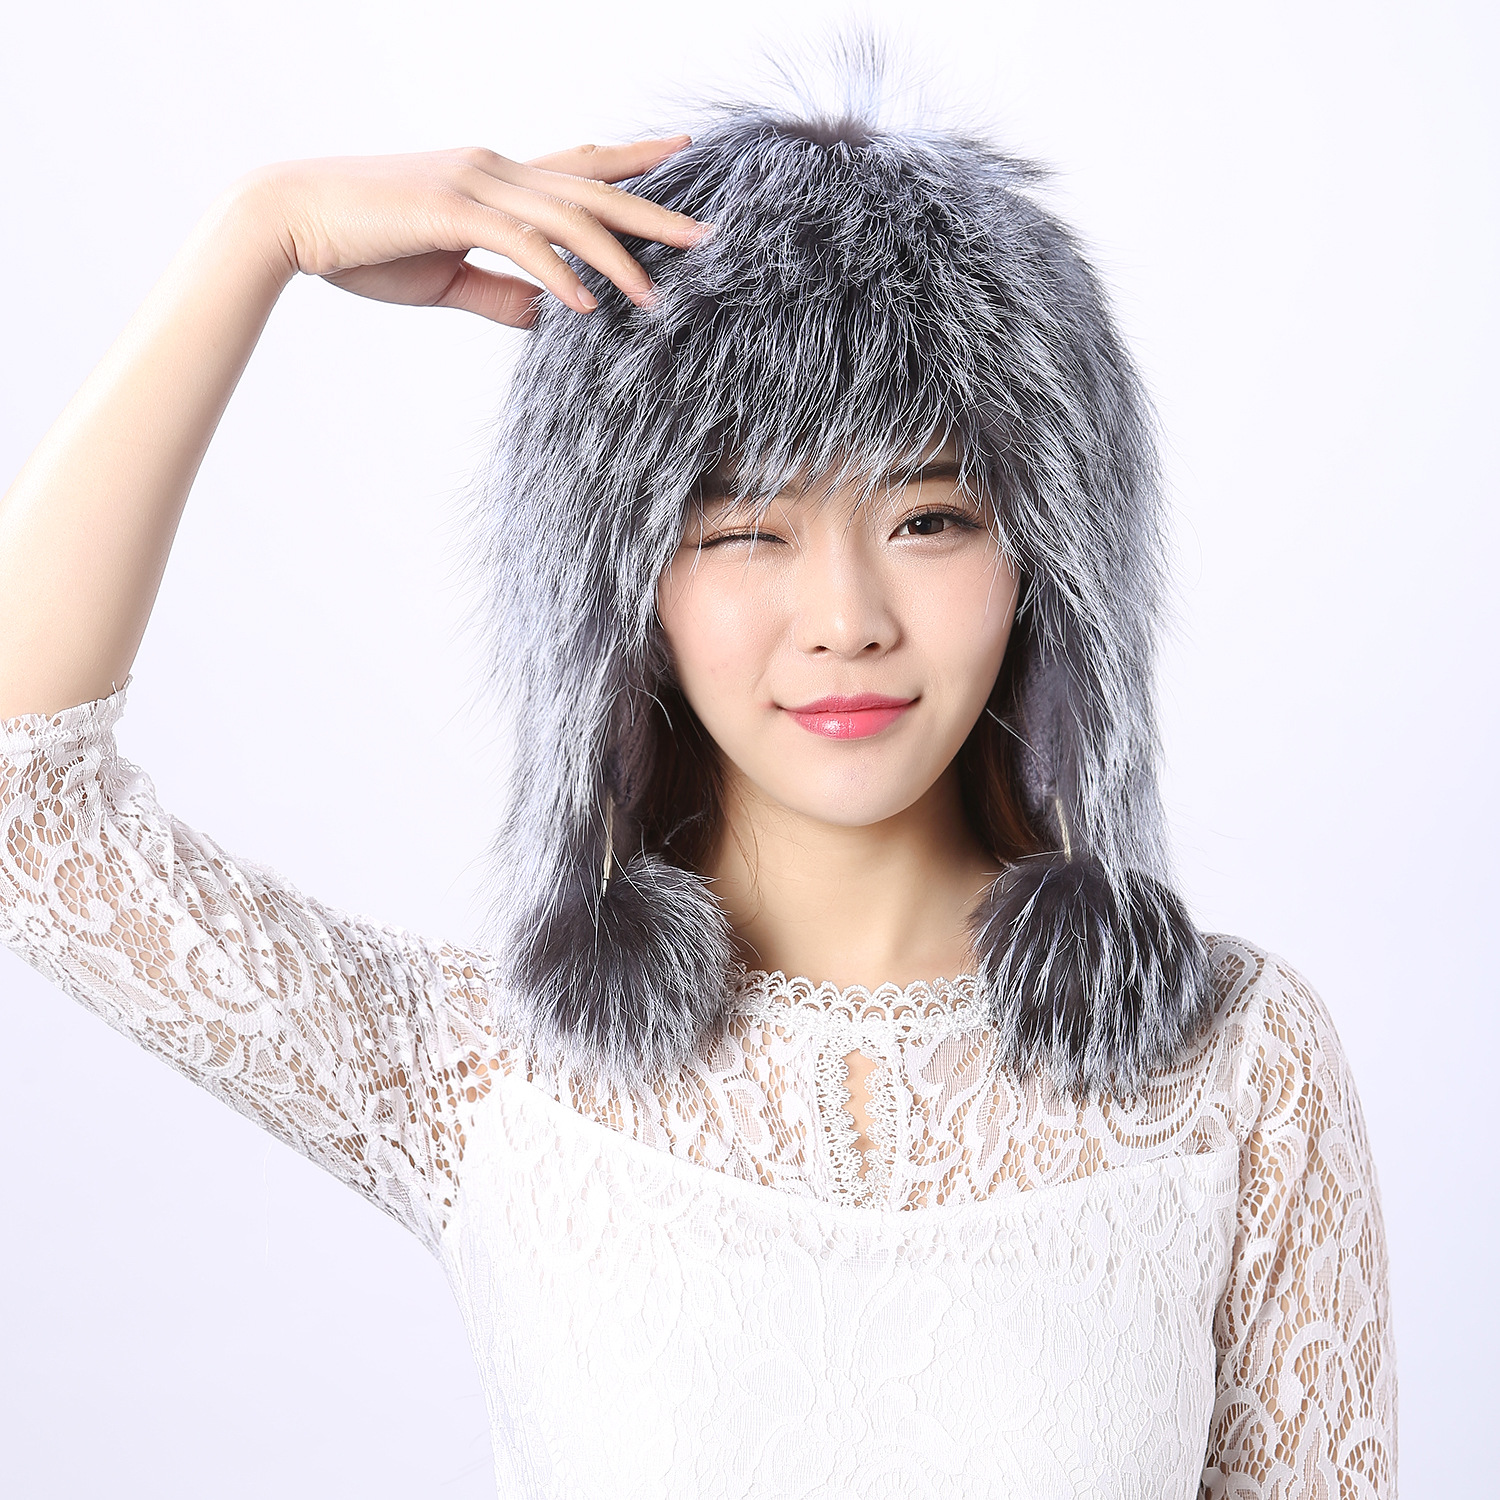 Manufacturers Directly selling genuine fox fur girl hat lady hats women cap winter warm ear cap female fox fur ball caps ac1005 3 pneumatic hydraulic shock absorber damper damper ac1005 specifications m10 1 0 low speed